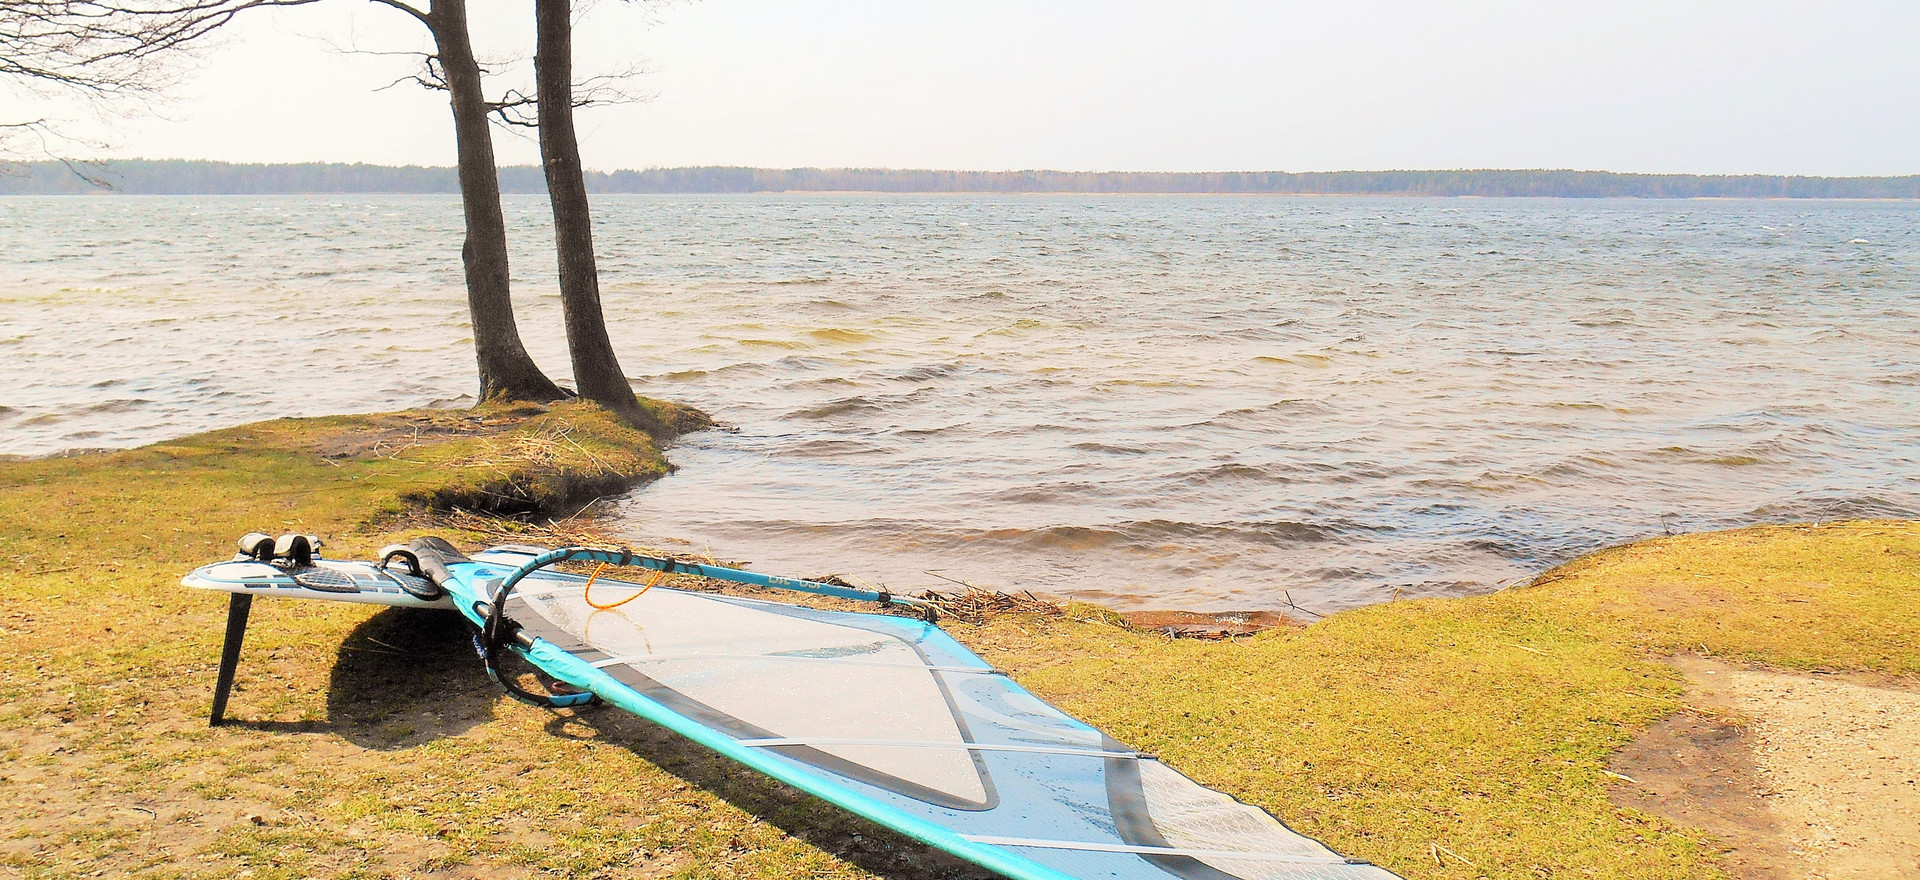 Waiting for the windsound, Busnieku Lake near Ventspils, April 2017